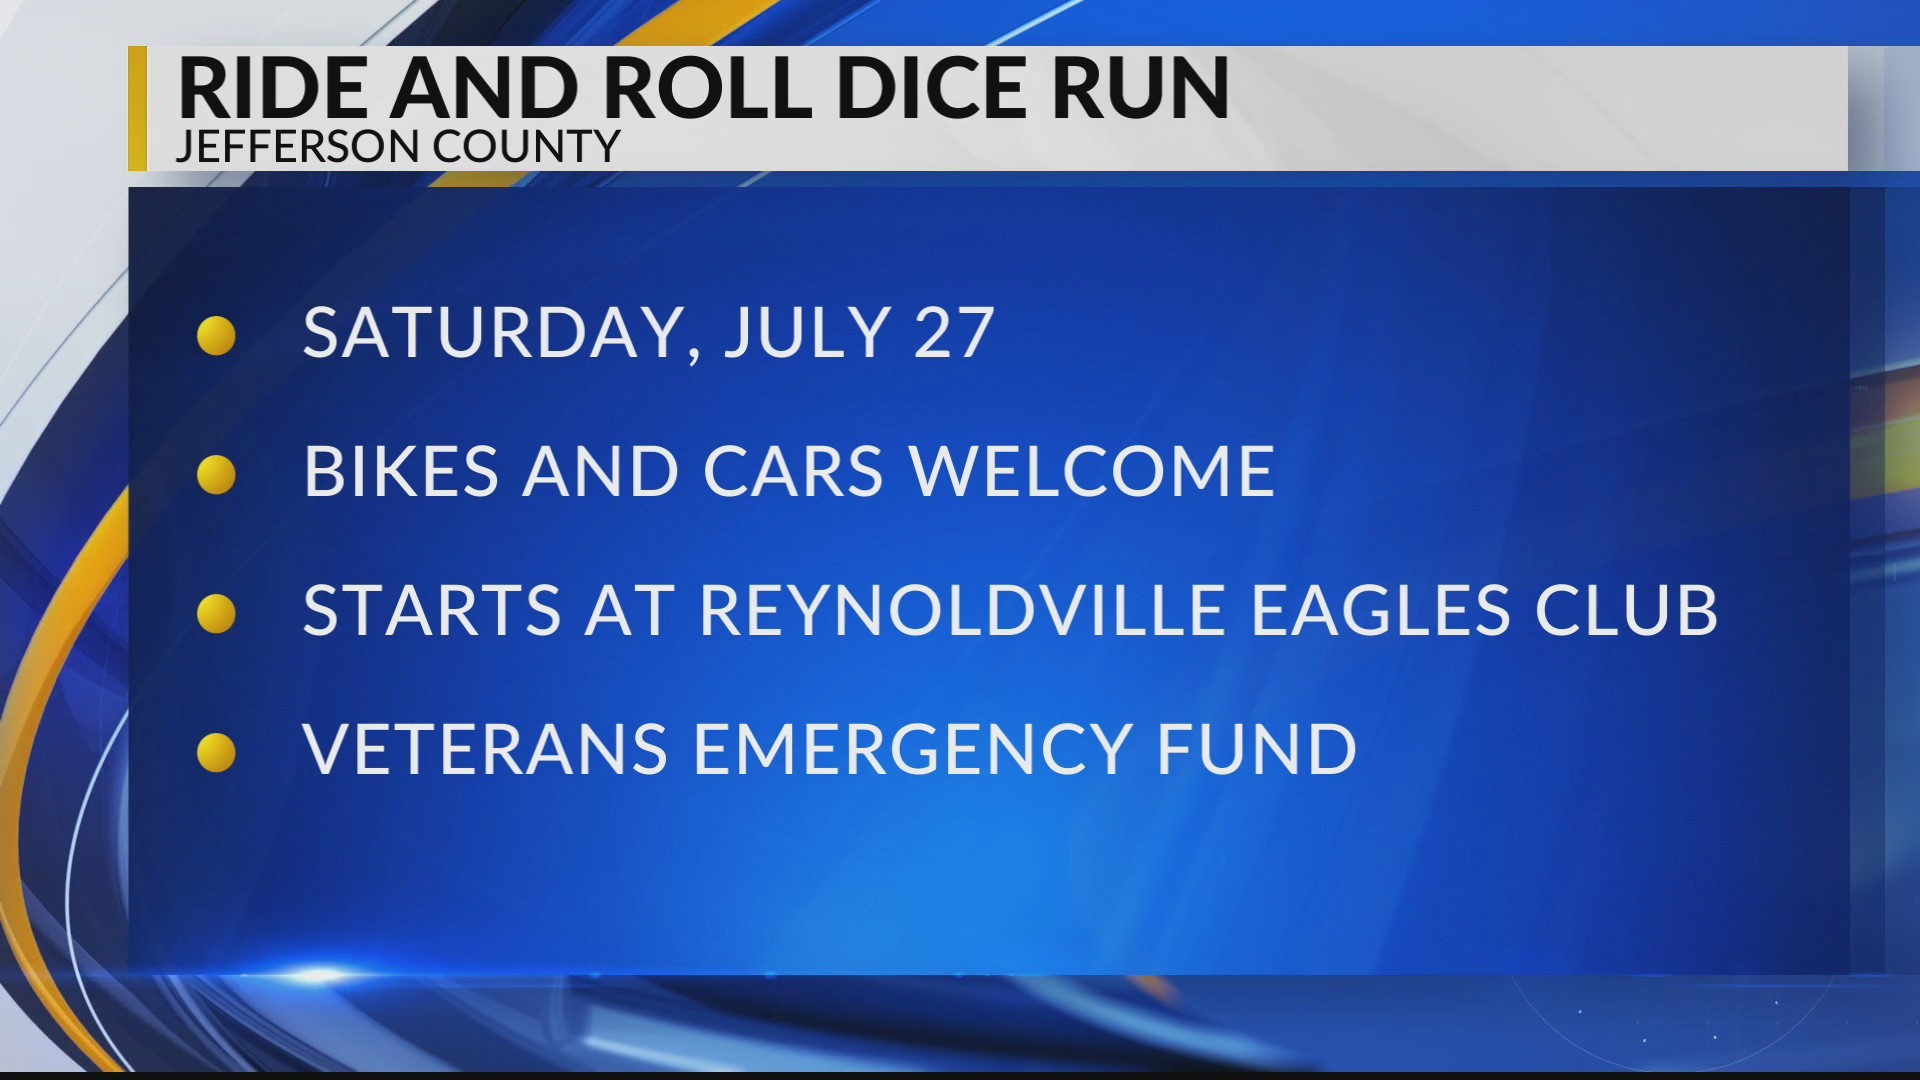 Ride_and_Roll_Dice_Run_in_Jefferson_Coun_0_20190603222457